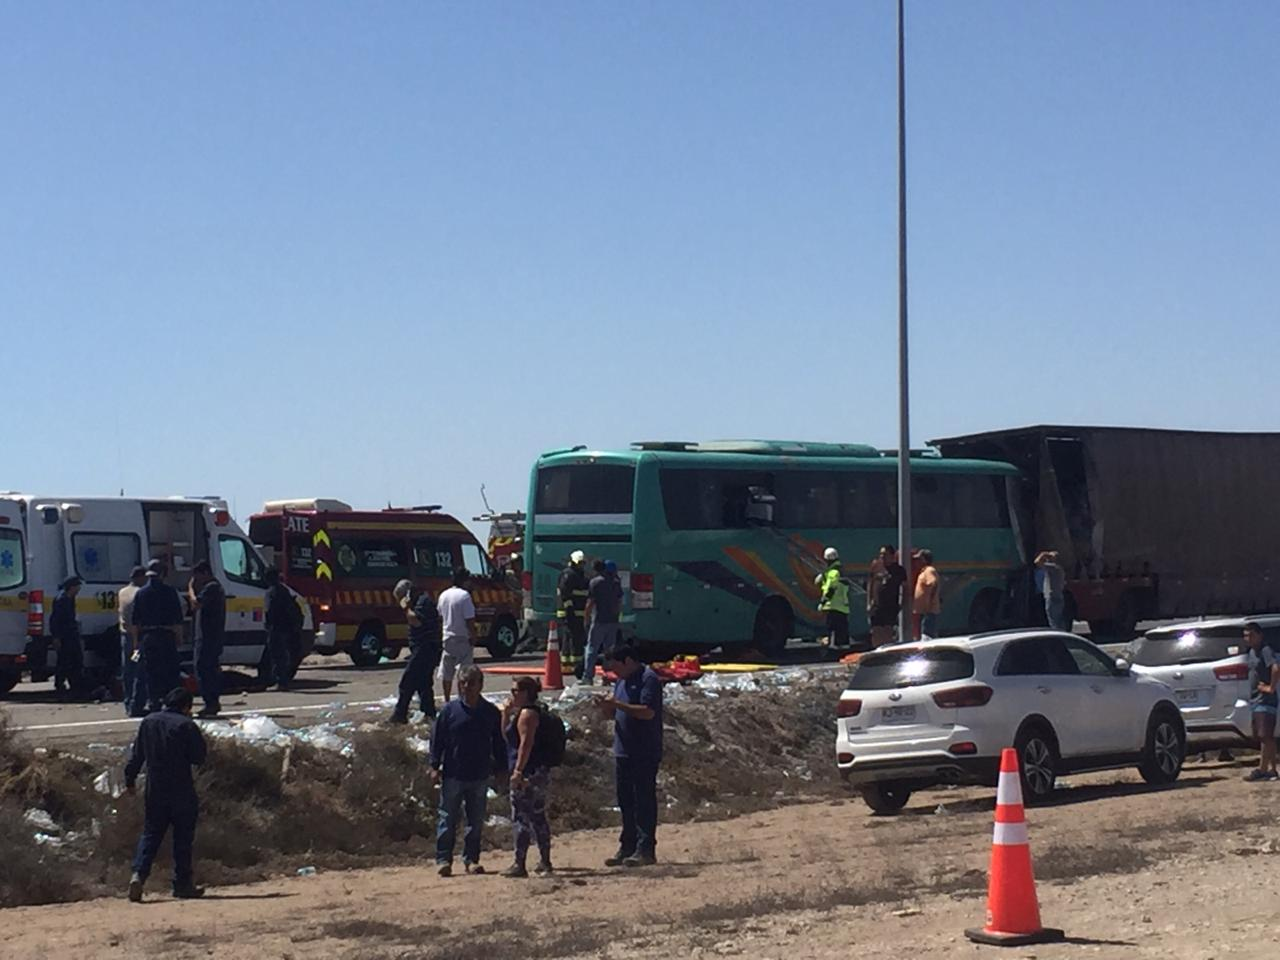 Chófer de bus de transportes de trabajadores falleció en accidente al norte de Vallenar